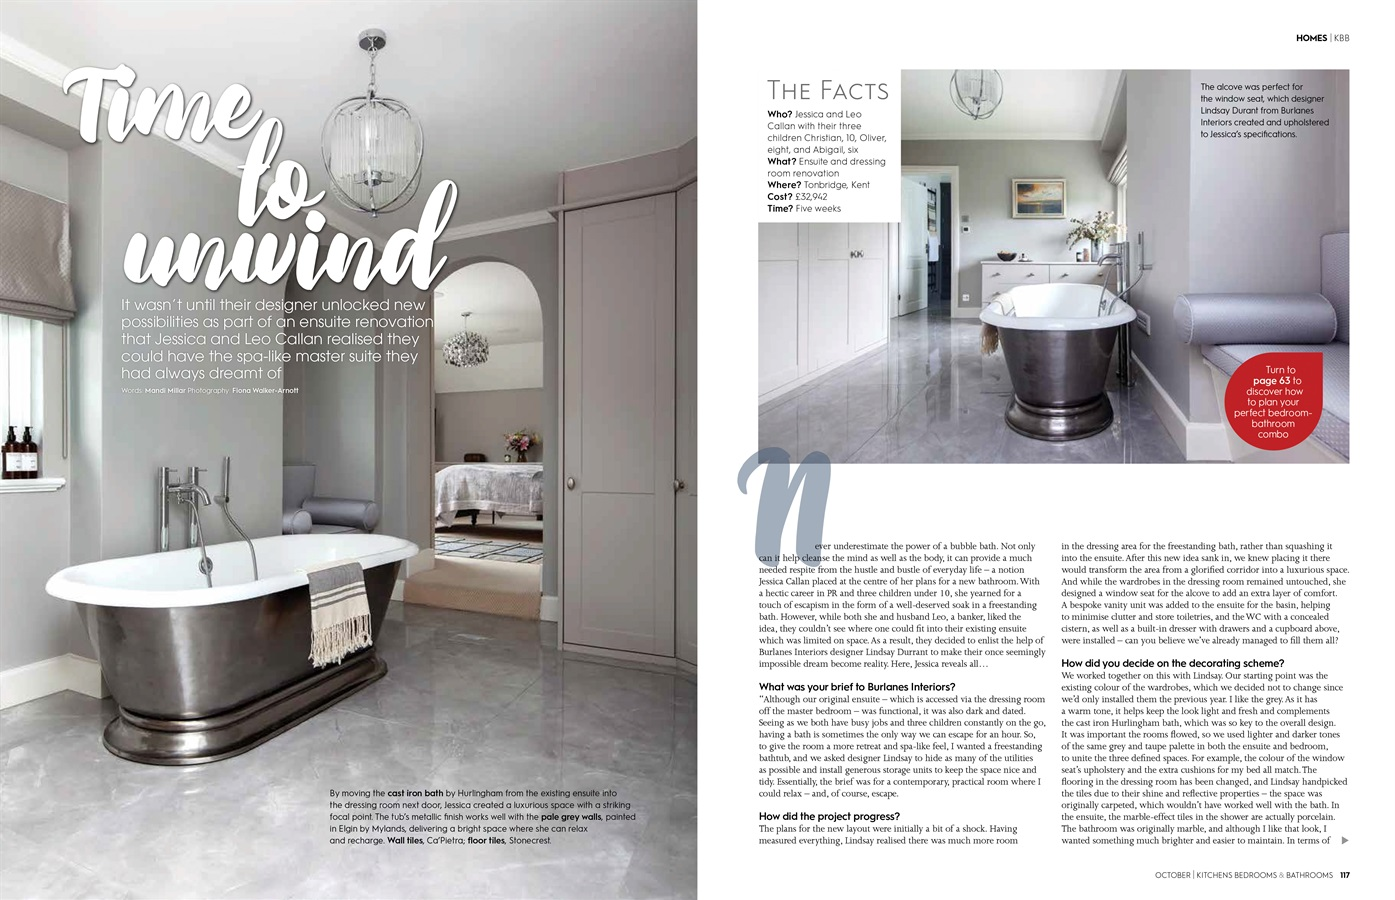 Kitchens bedrooms & Bathrooms Magazine - Burlanes Bespoke Bathroom Furniture Featured in Kitchens Bedrooms & Bathrooms Magazine